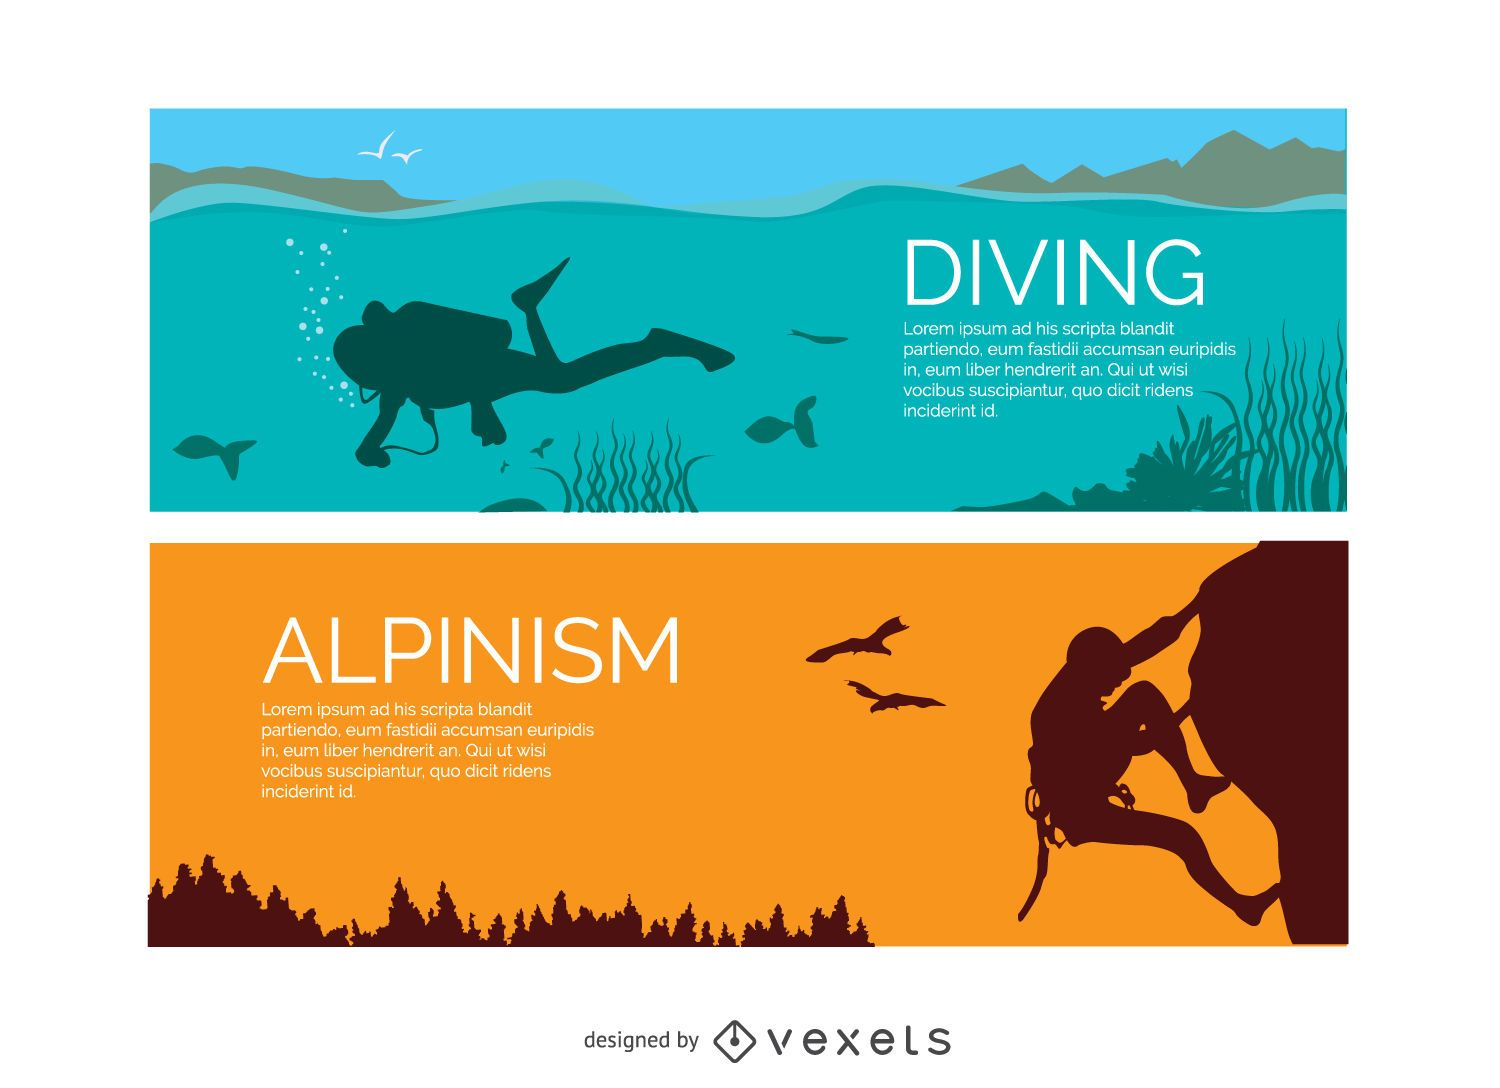 Diving and alpinism banners